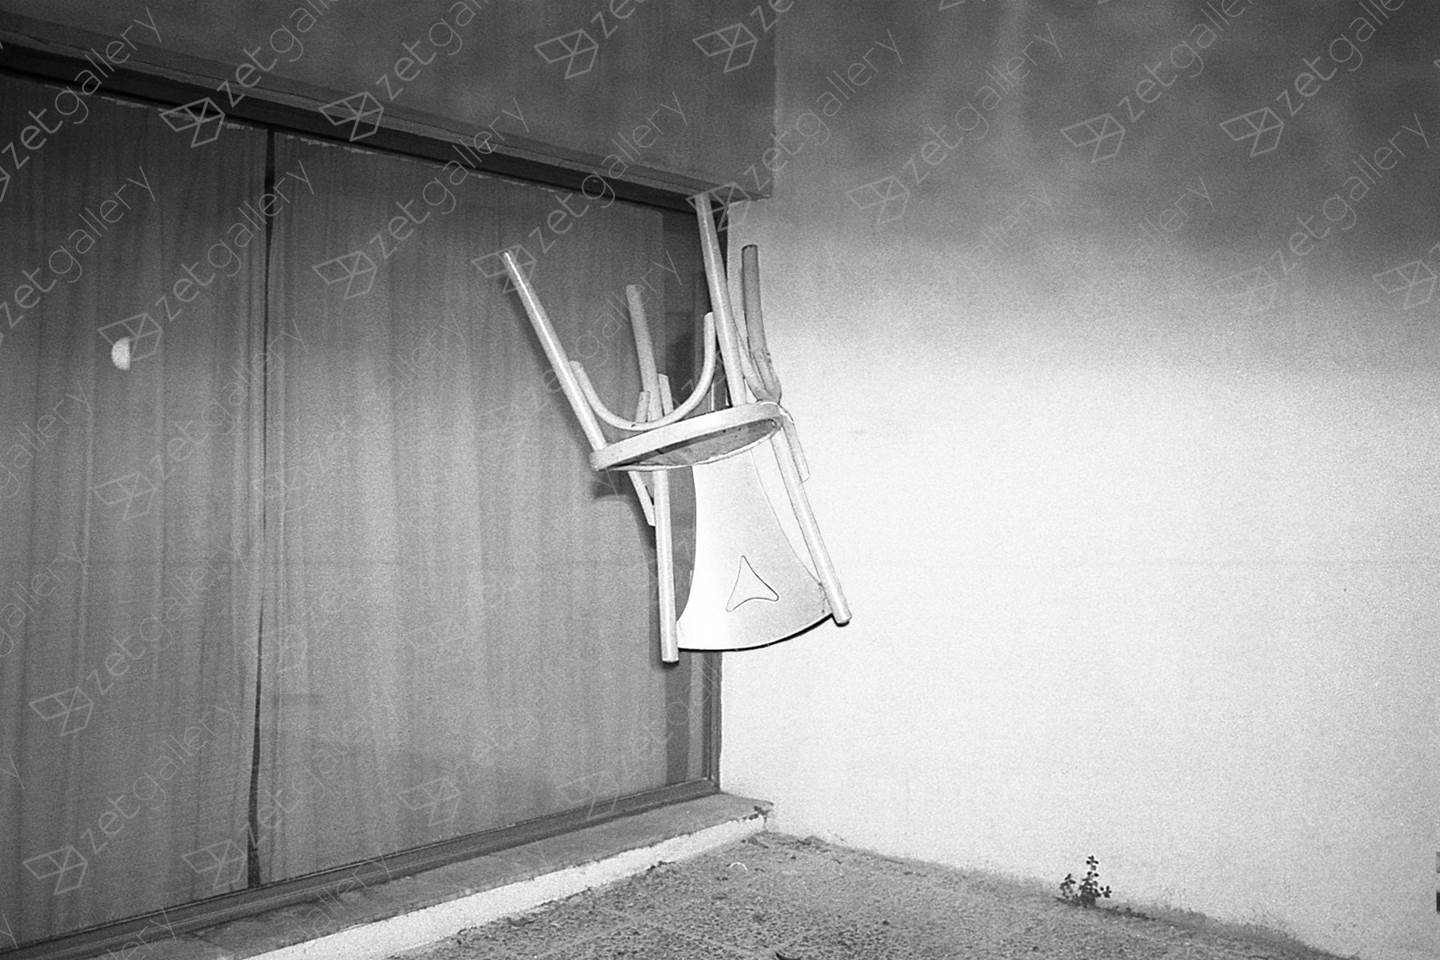 Floating Chair, original B&W Analog Photography by Yorgos Kapsalakis